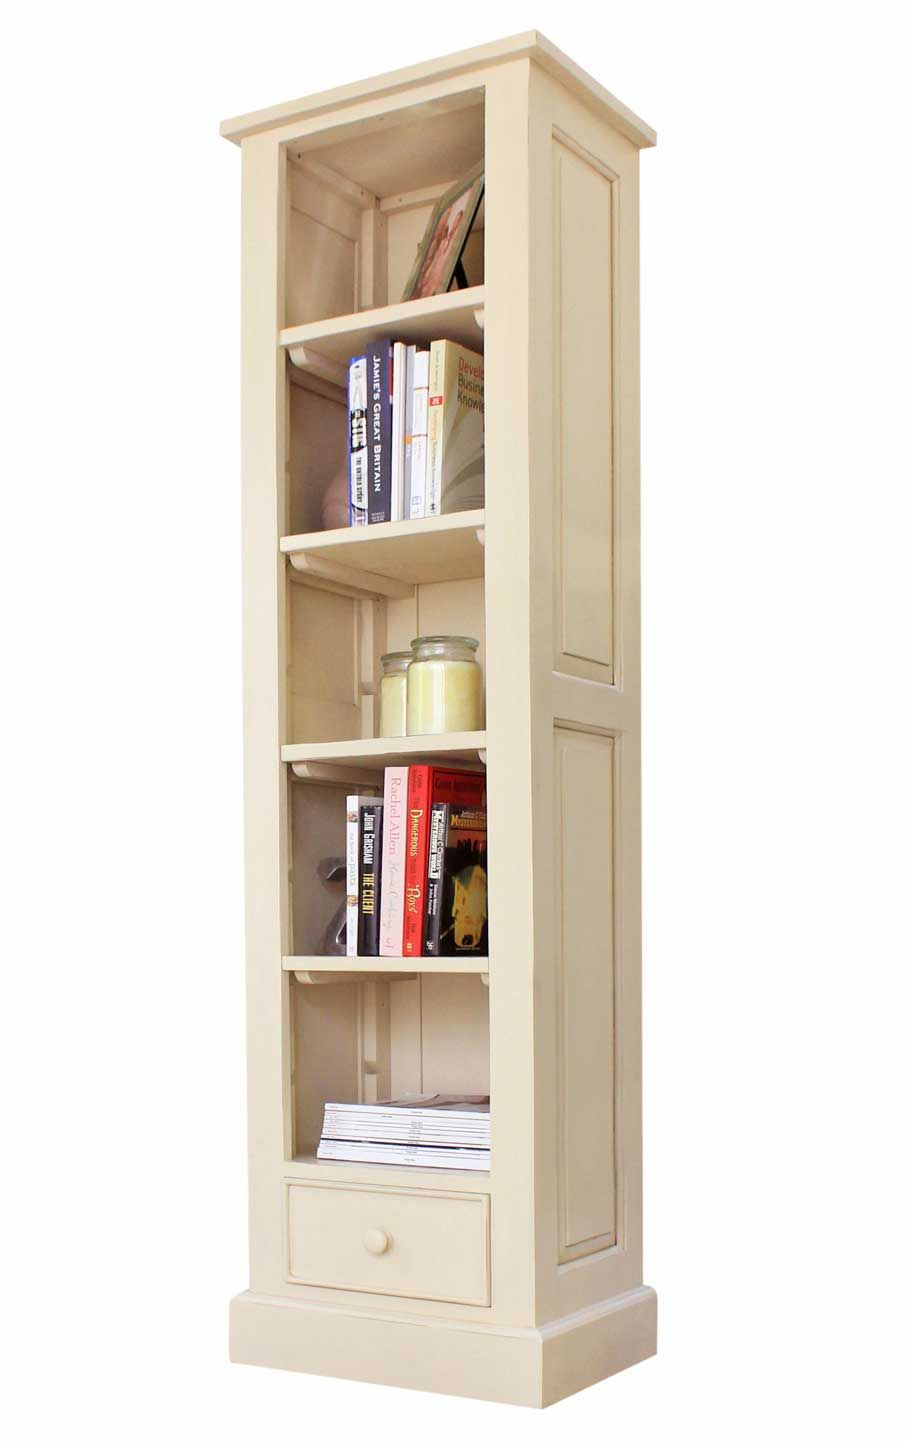 Marios Cream Mahogany Narrow Alcove Open Is Specifically Designed To Make An Excellent Addition Your It Comes With 5 Adjule Shelves And One Drawer